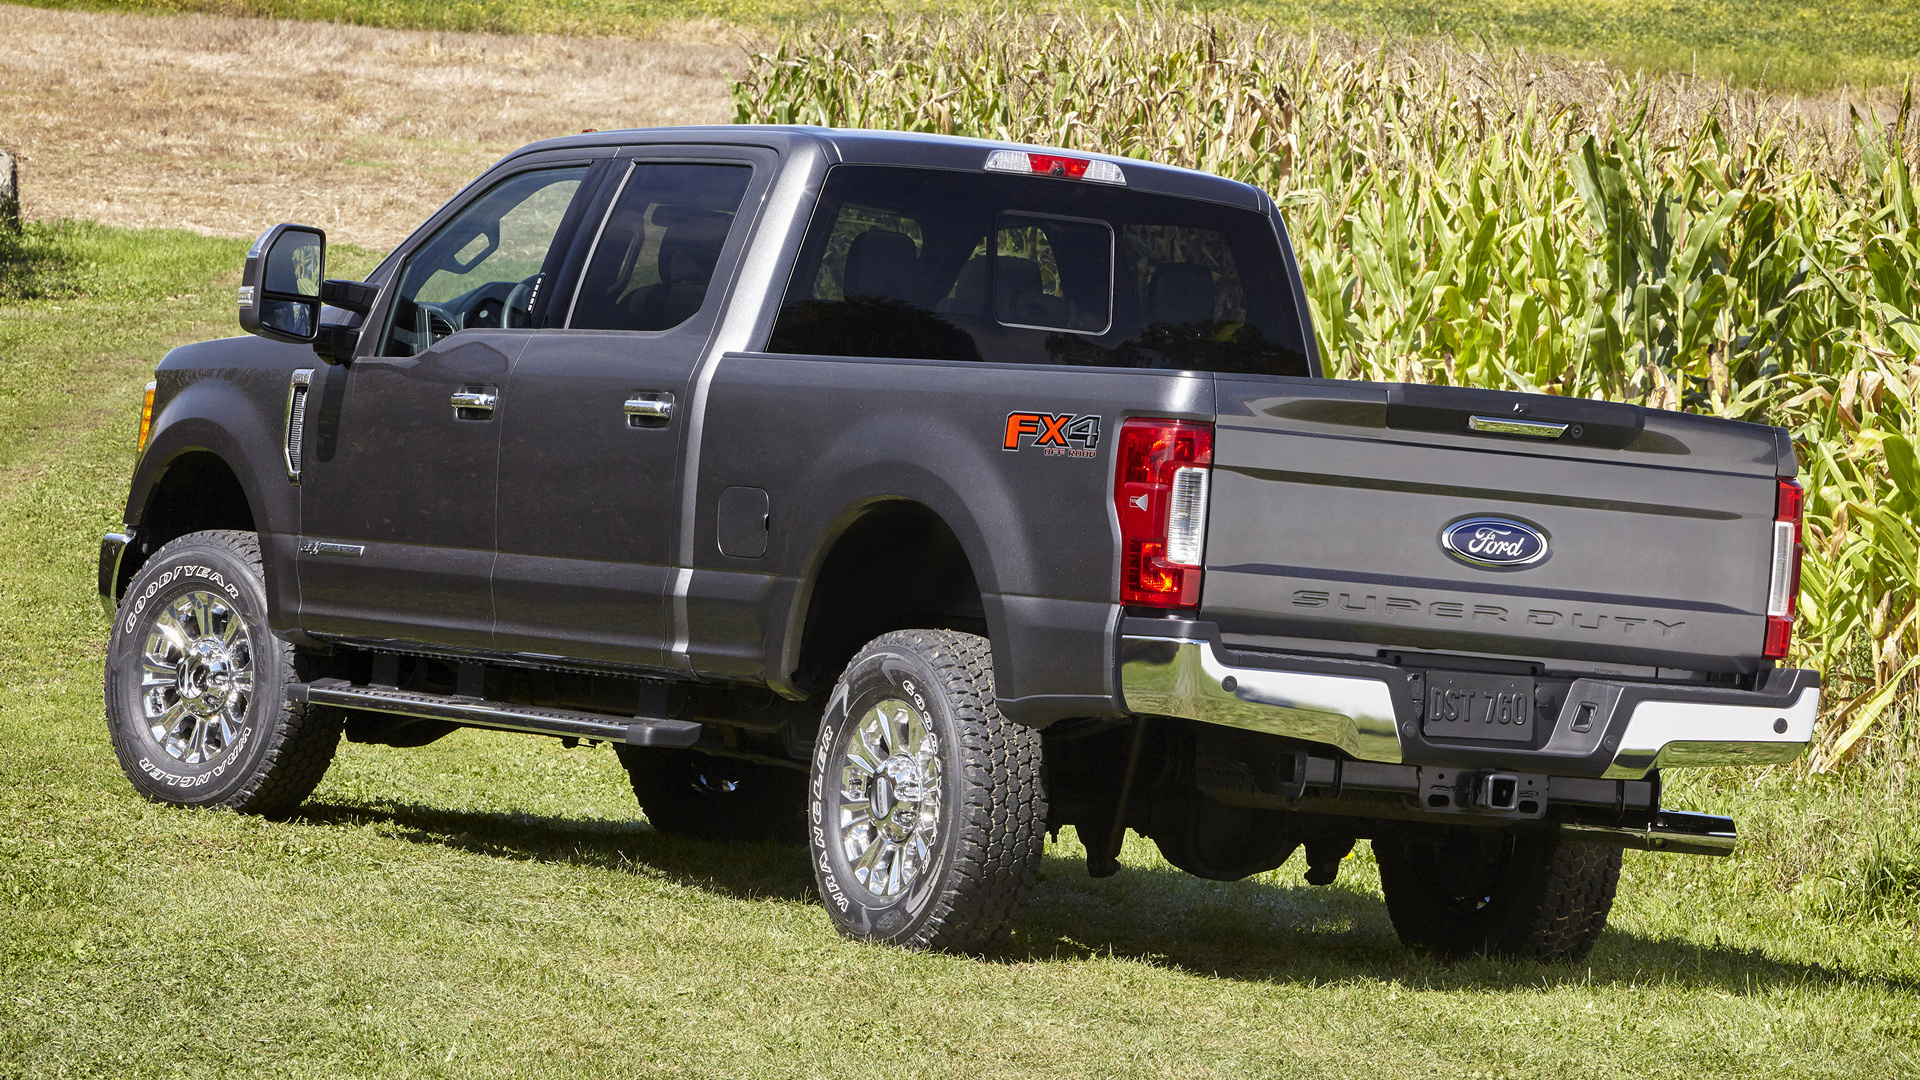 Ford F-250 XLT FX4 Crew Cab (2017) Wallpapers and HD Images - Car ...